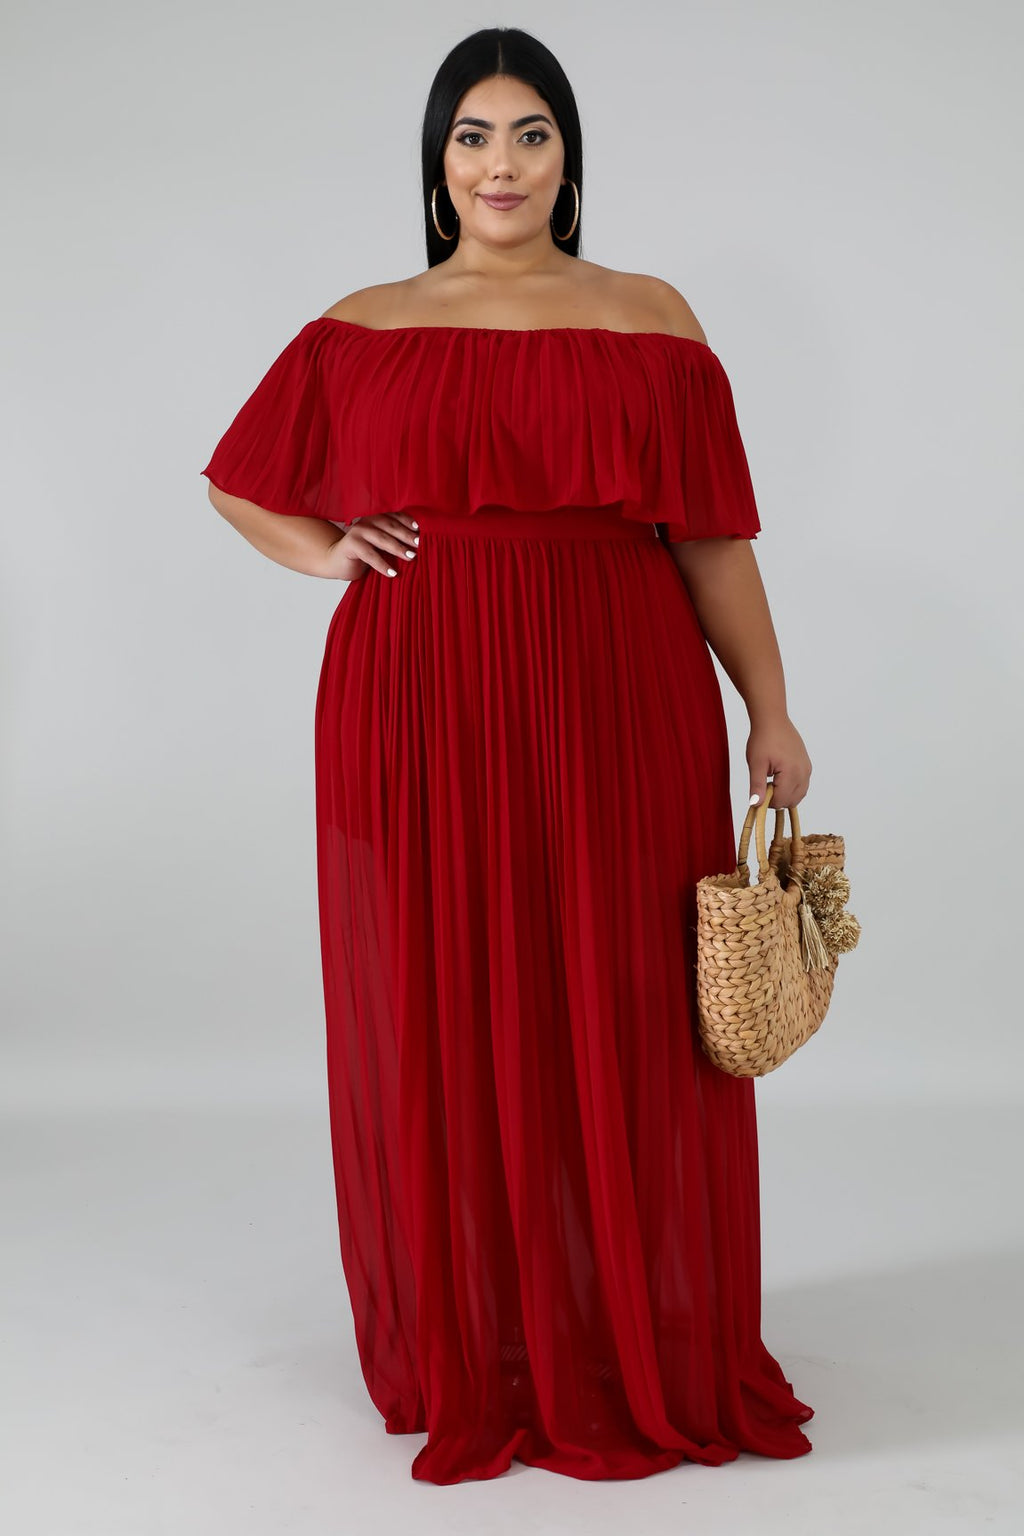 Dress - Ripples (Red)